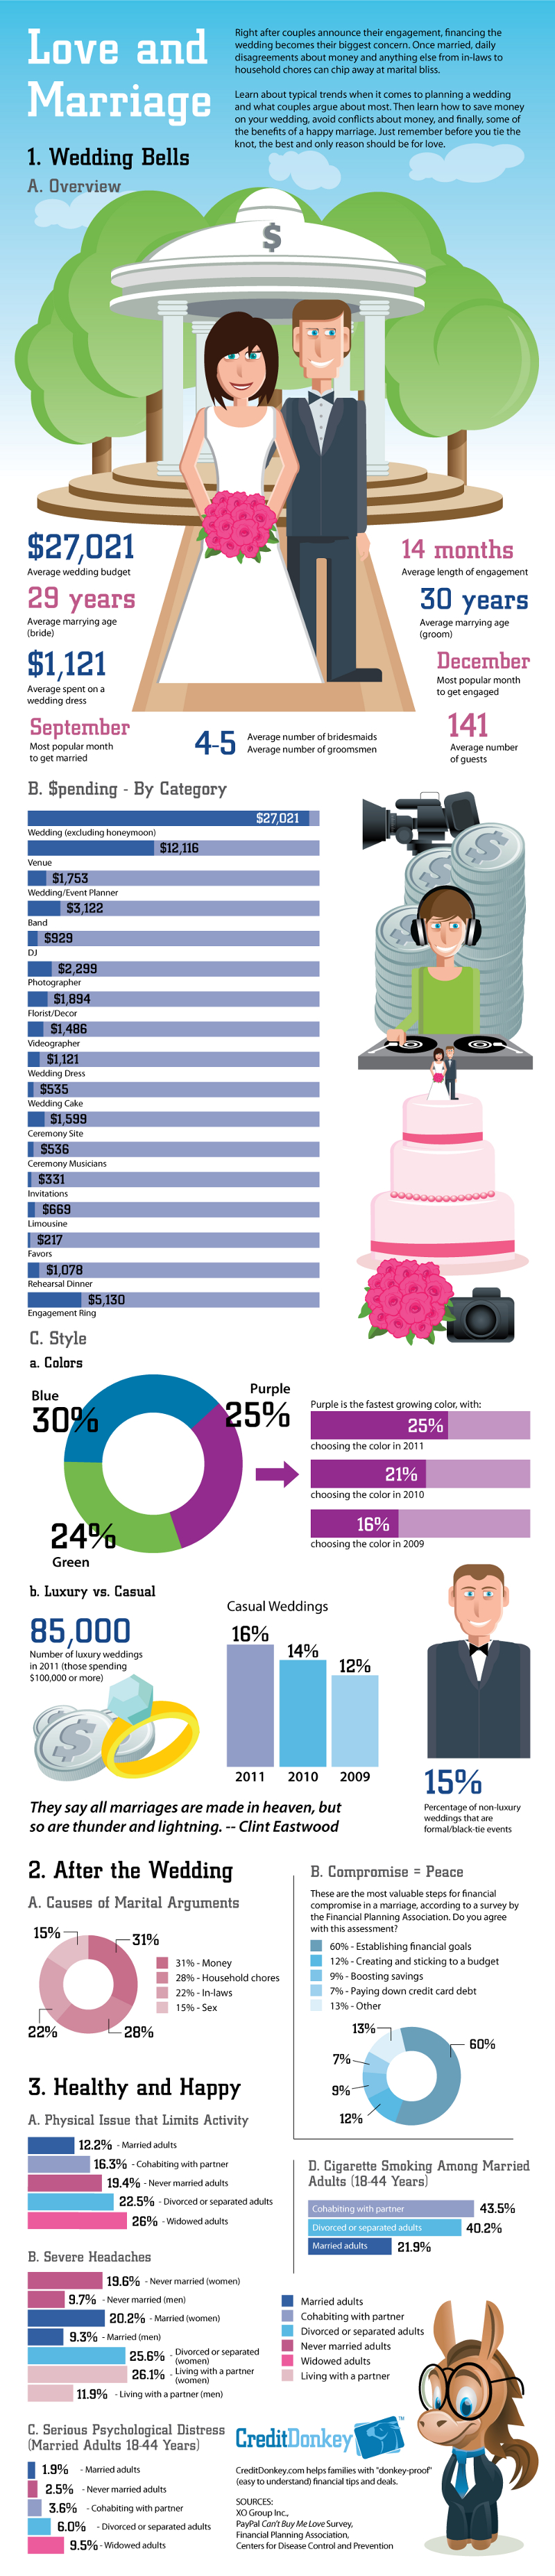 Facts of Marriage and Living Together